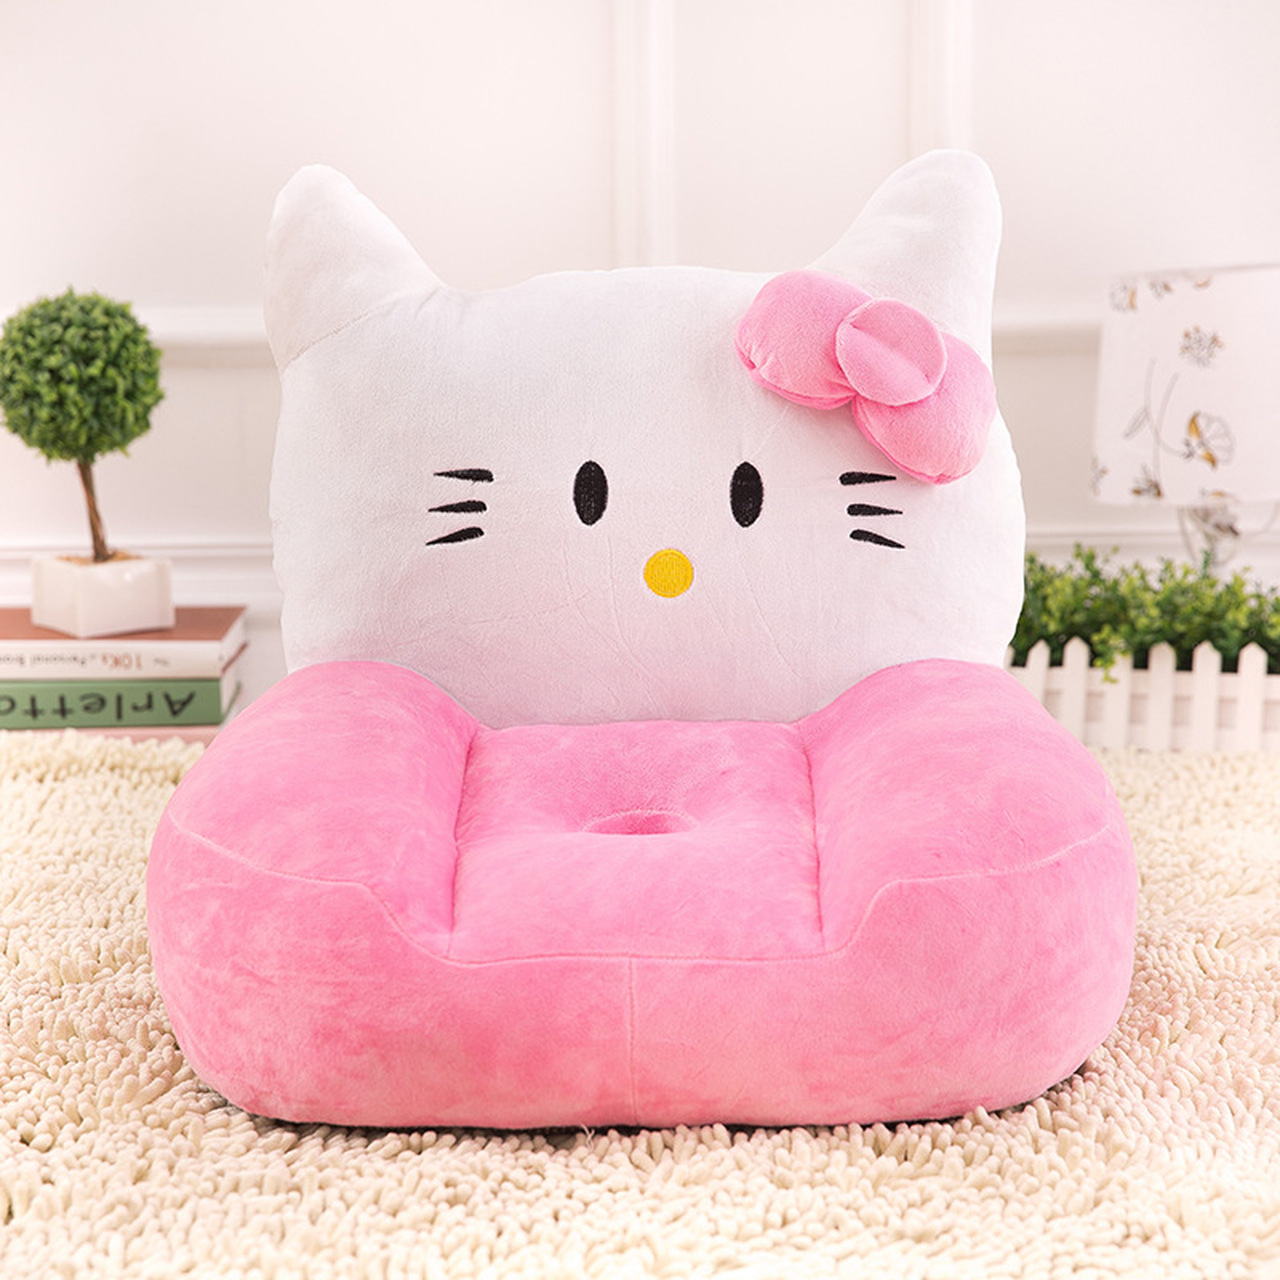 New Amazing Baby Kids Children Seats Sofa Bean Bag Baby Kids Children Plush Toys With PP Cotton Filling Material